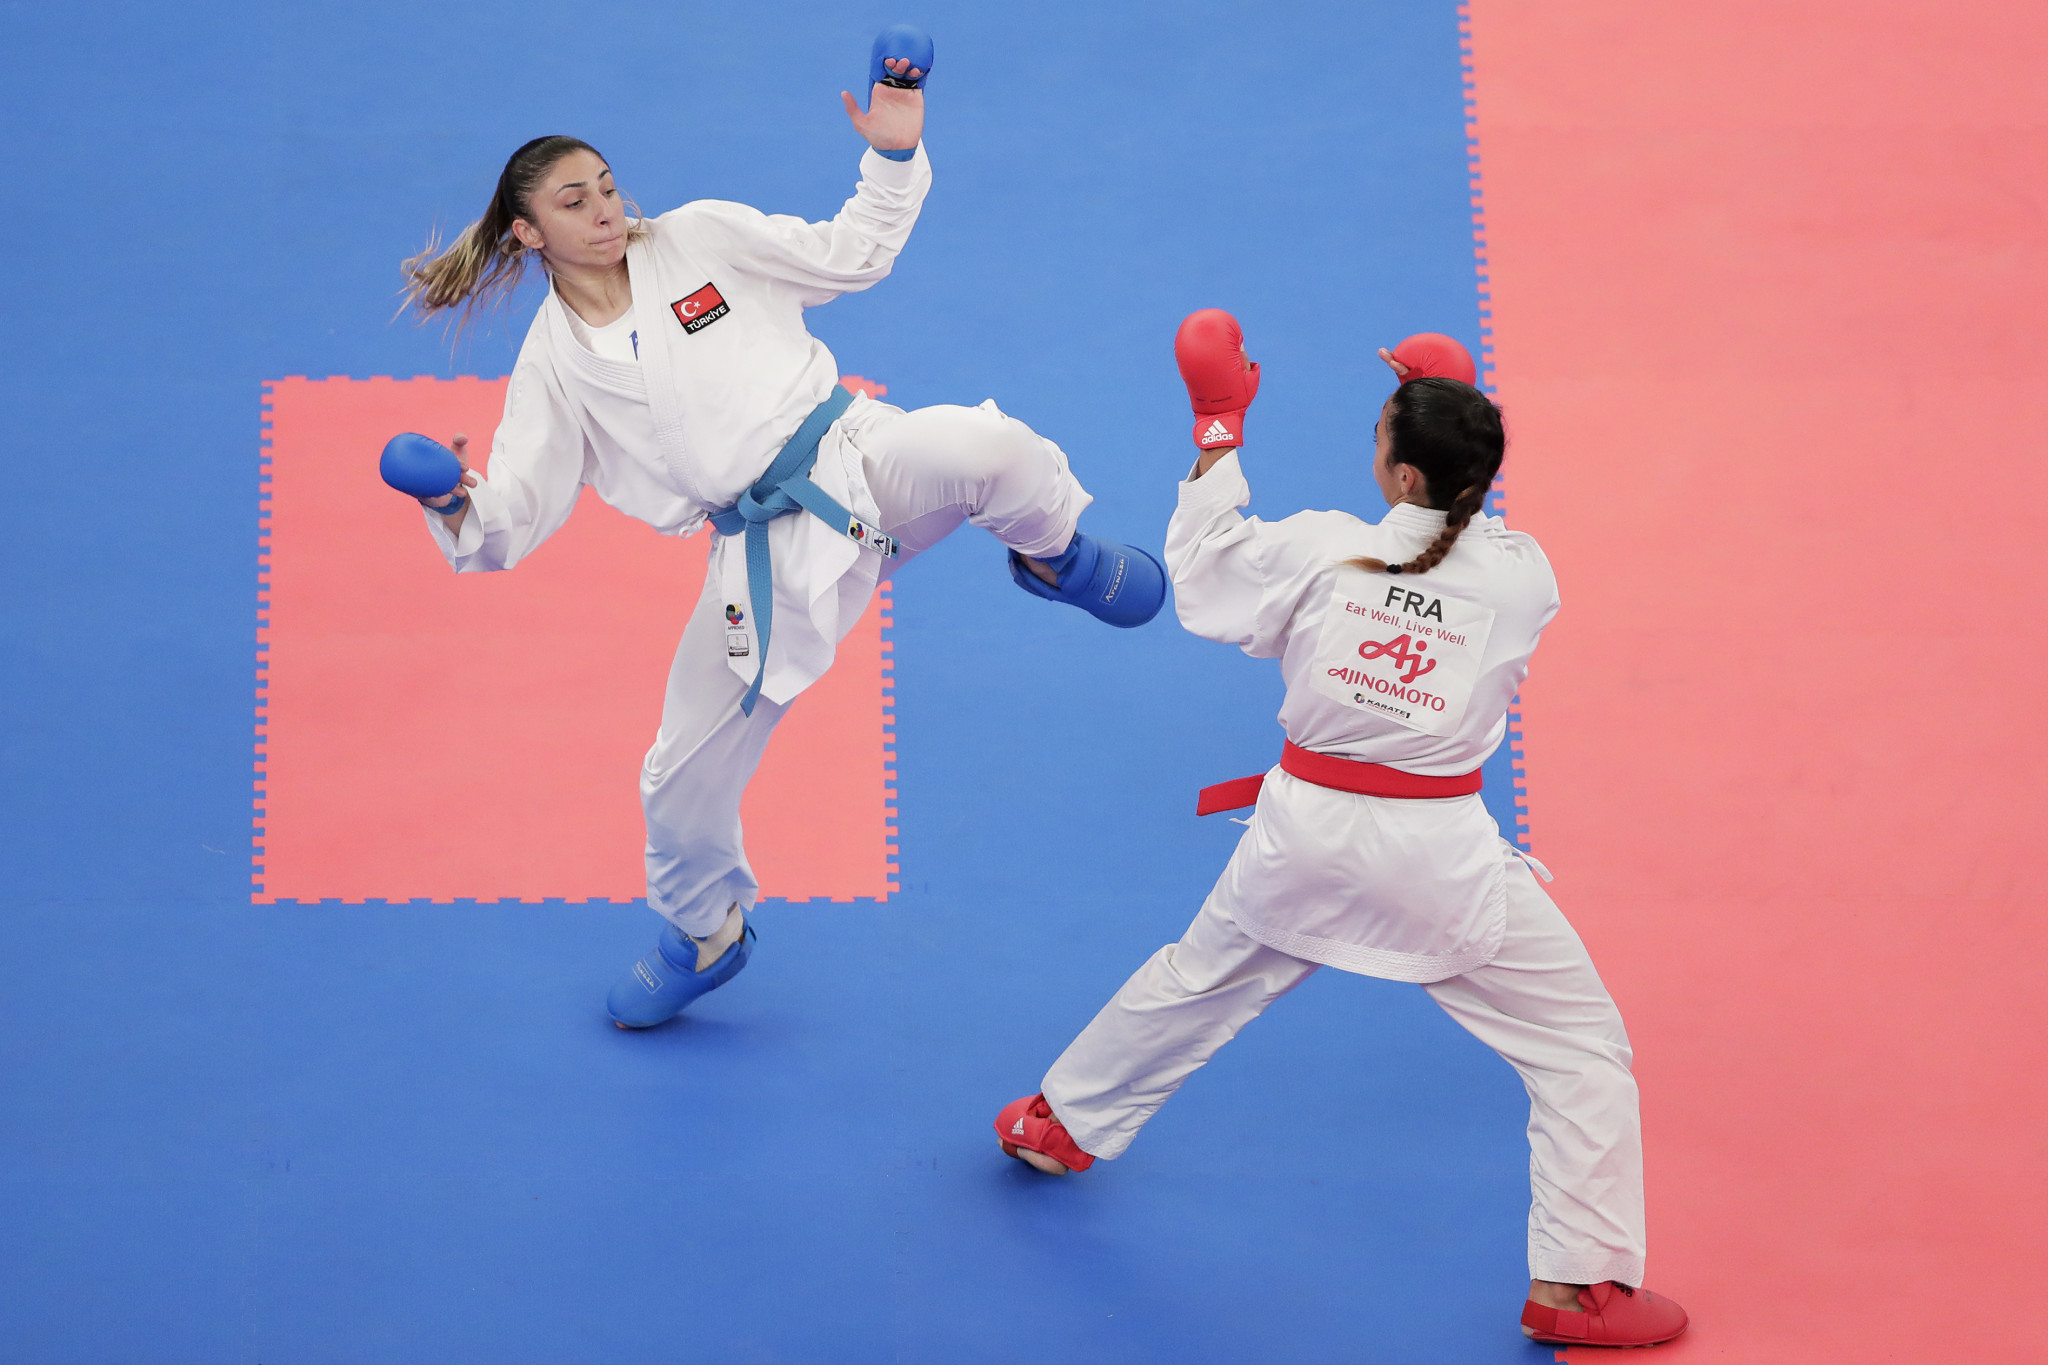 Turkey enjoyed a successful day at the Karate 1-Premier League in Salzburg ©Getty Images